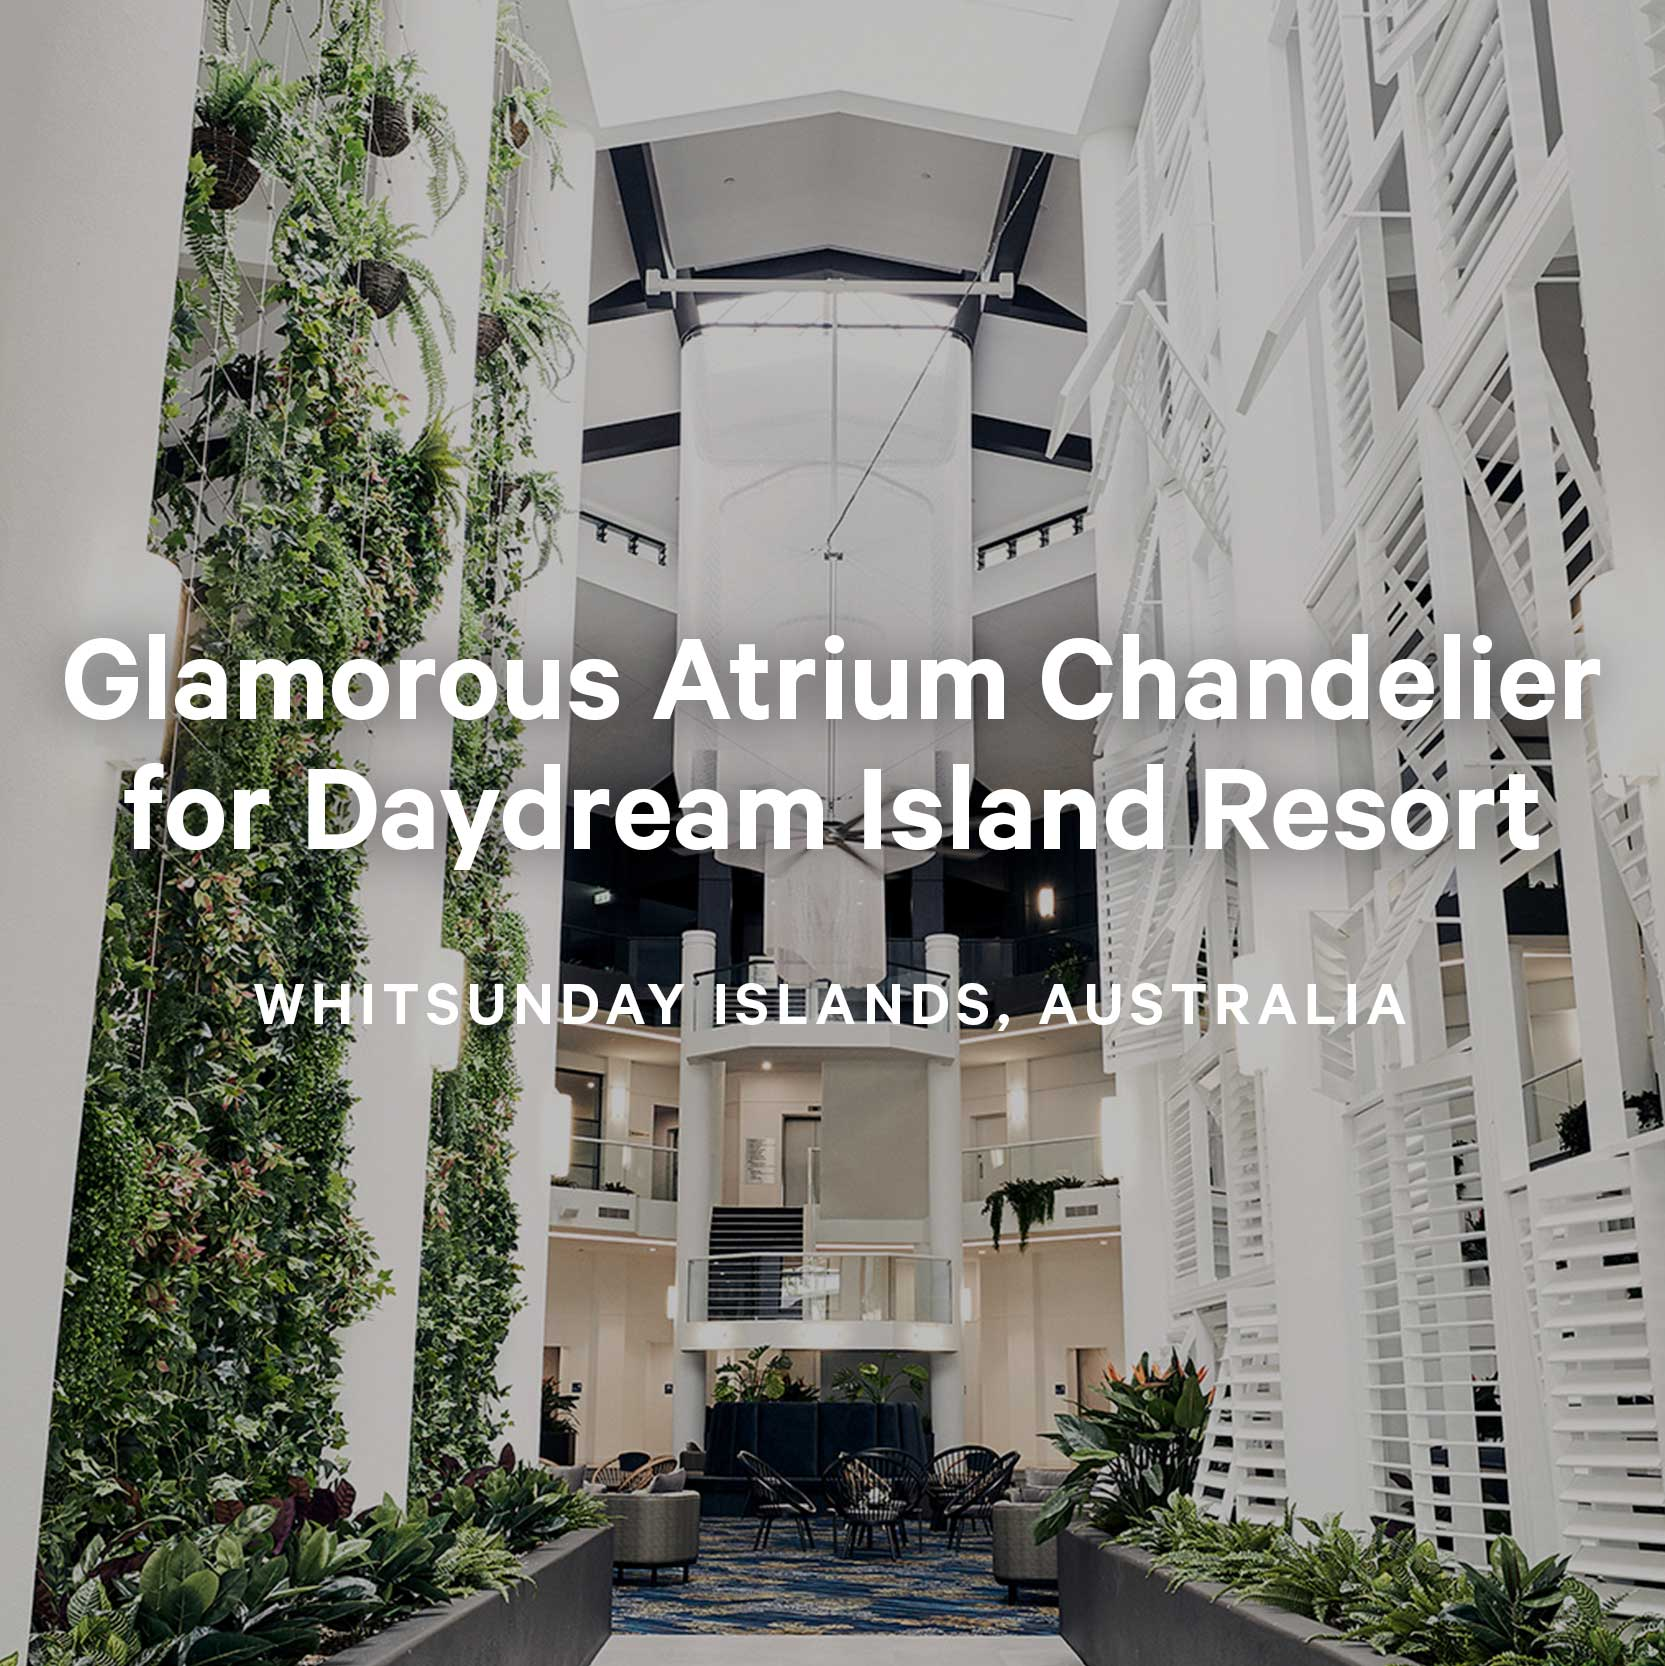 Daydream Island Resort Chandelier by Kaynemaile